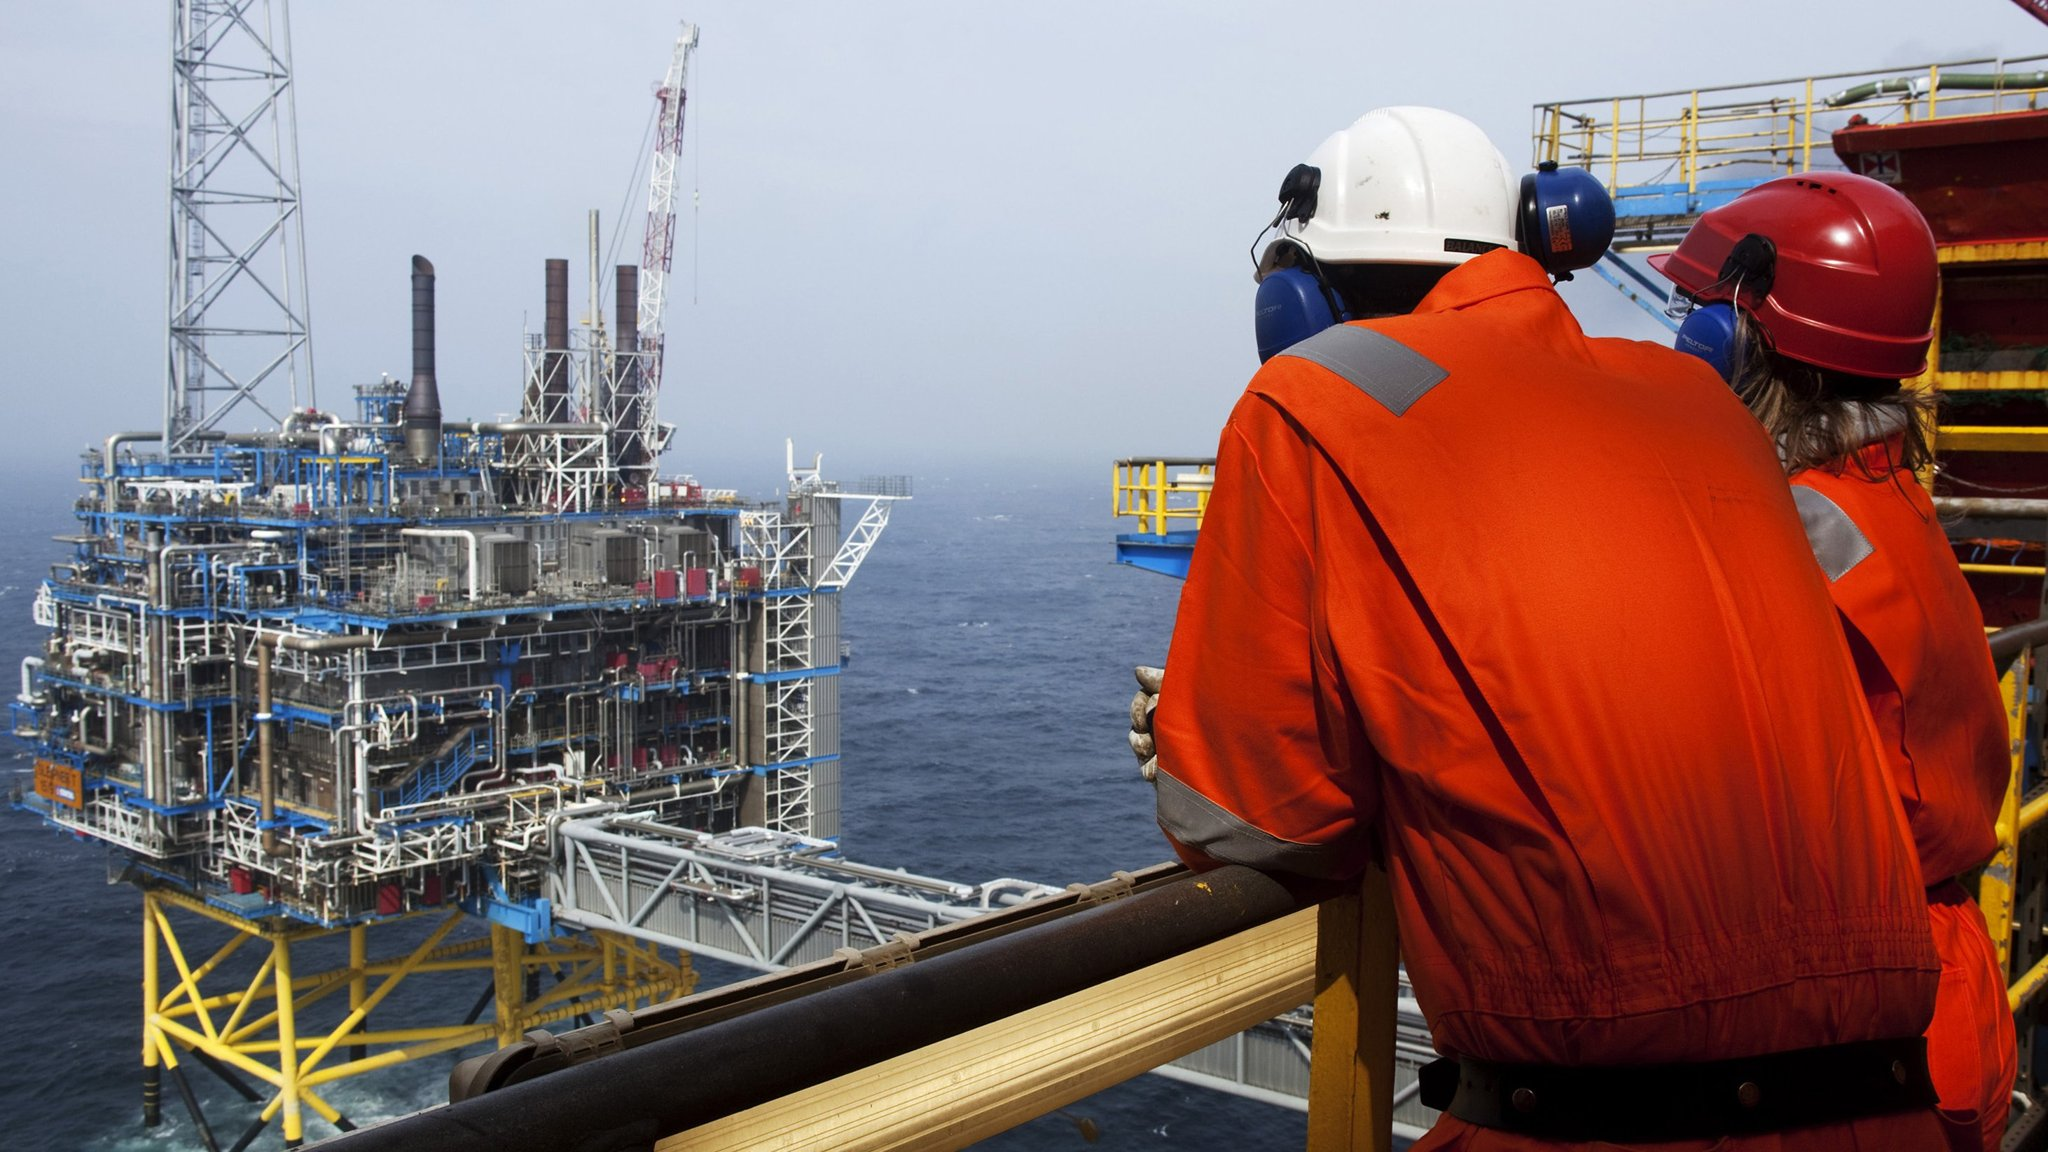 Statoil And Chevron Lead Pack In Securing Norwegian Oil